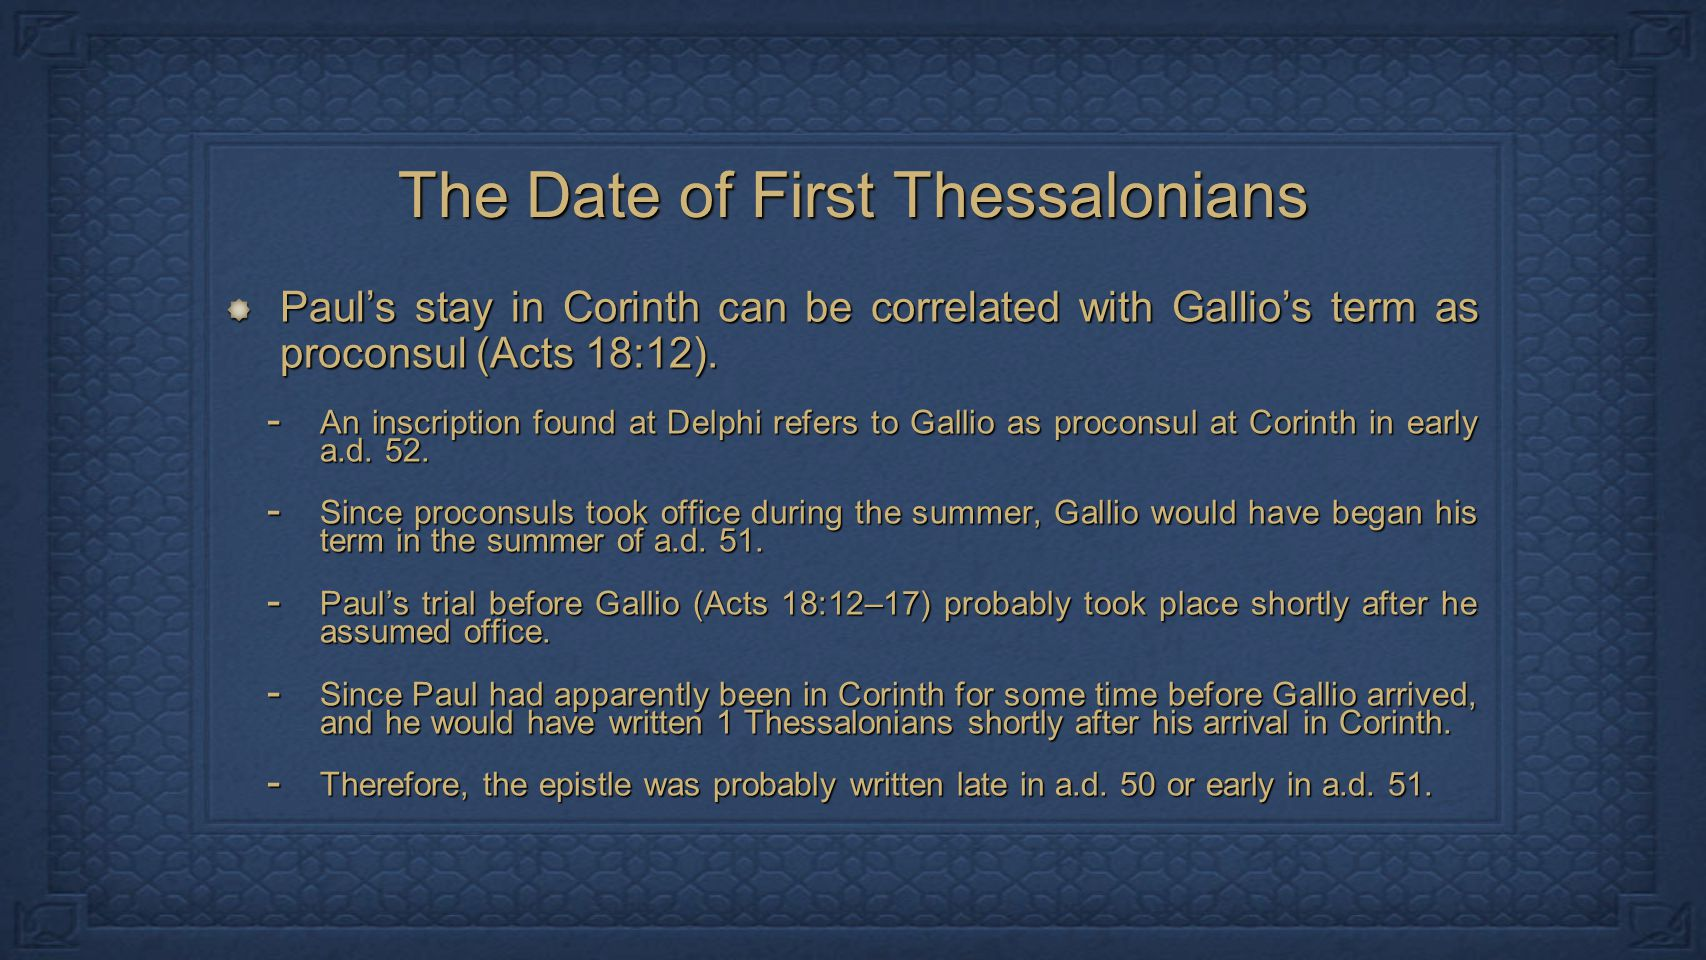 The Date of First Thessalonians Paul's stay in Corinth can be correlated with Gallio's term as proconsul (Acts 18:12).